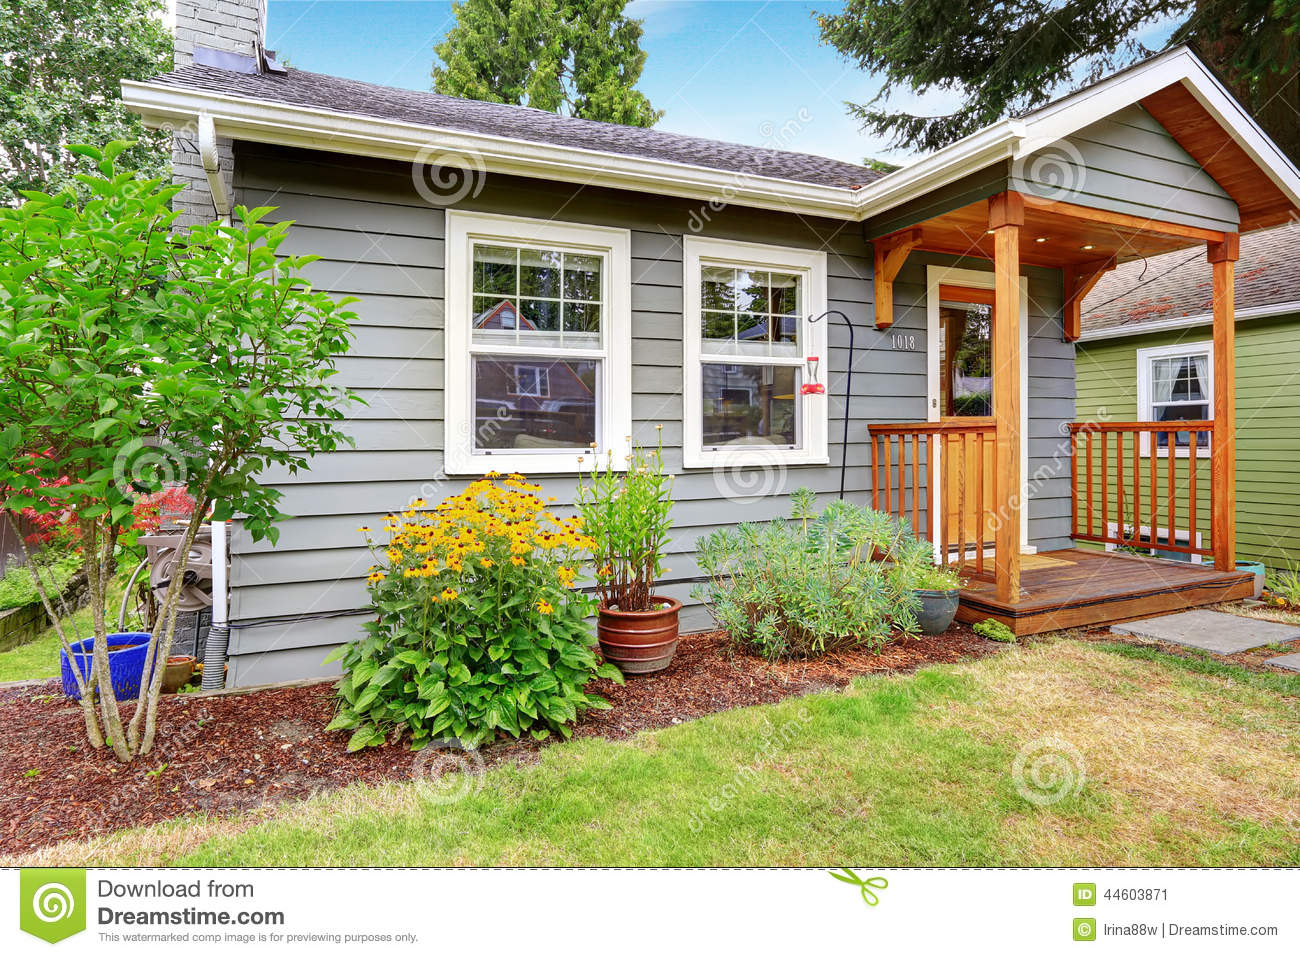 Grey Old House With Wooden Trim Stock Photo - Image: 44603871